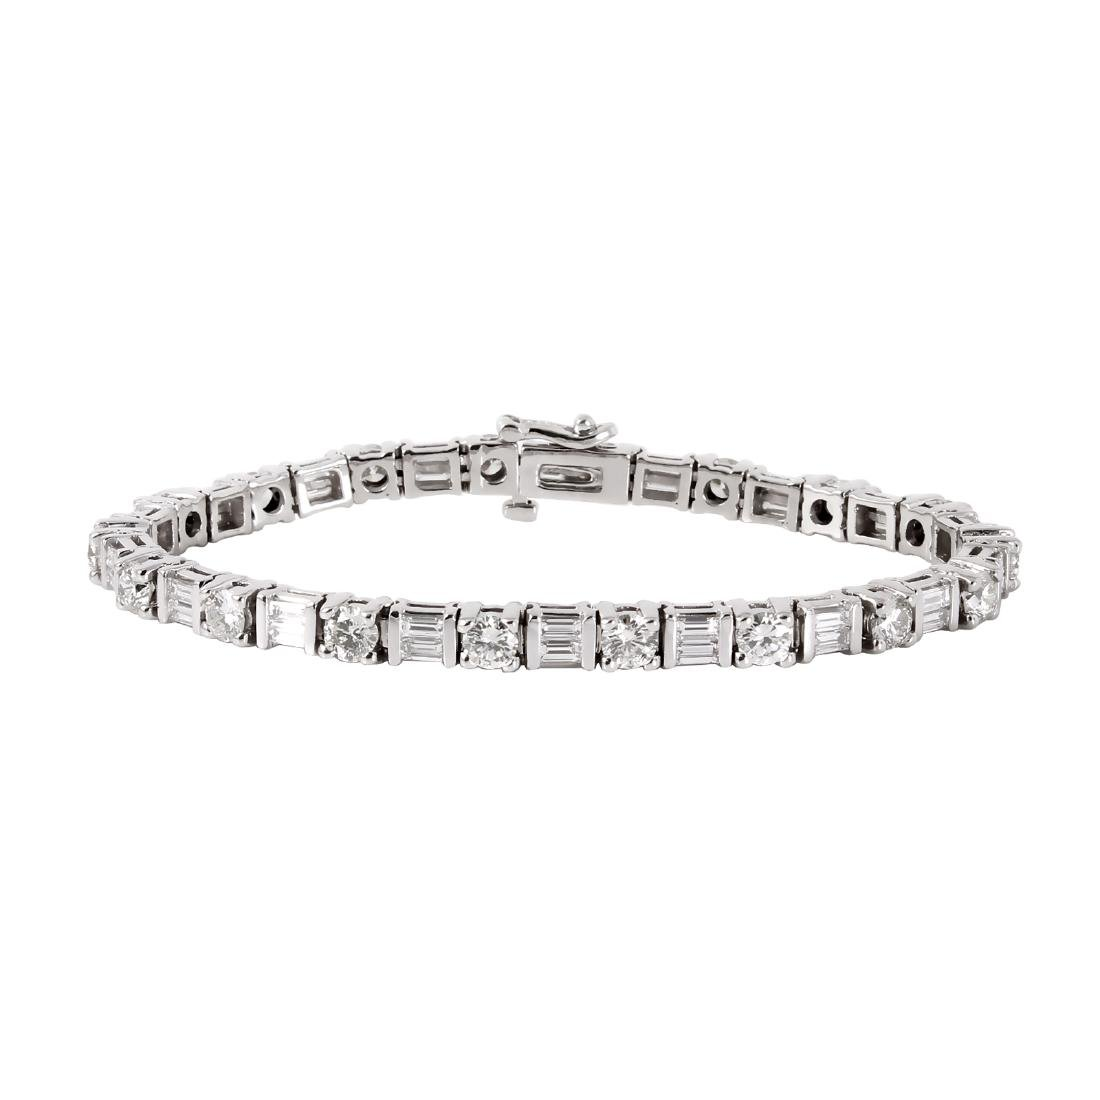 New Platinum Diamond Tennis Bracelet